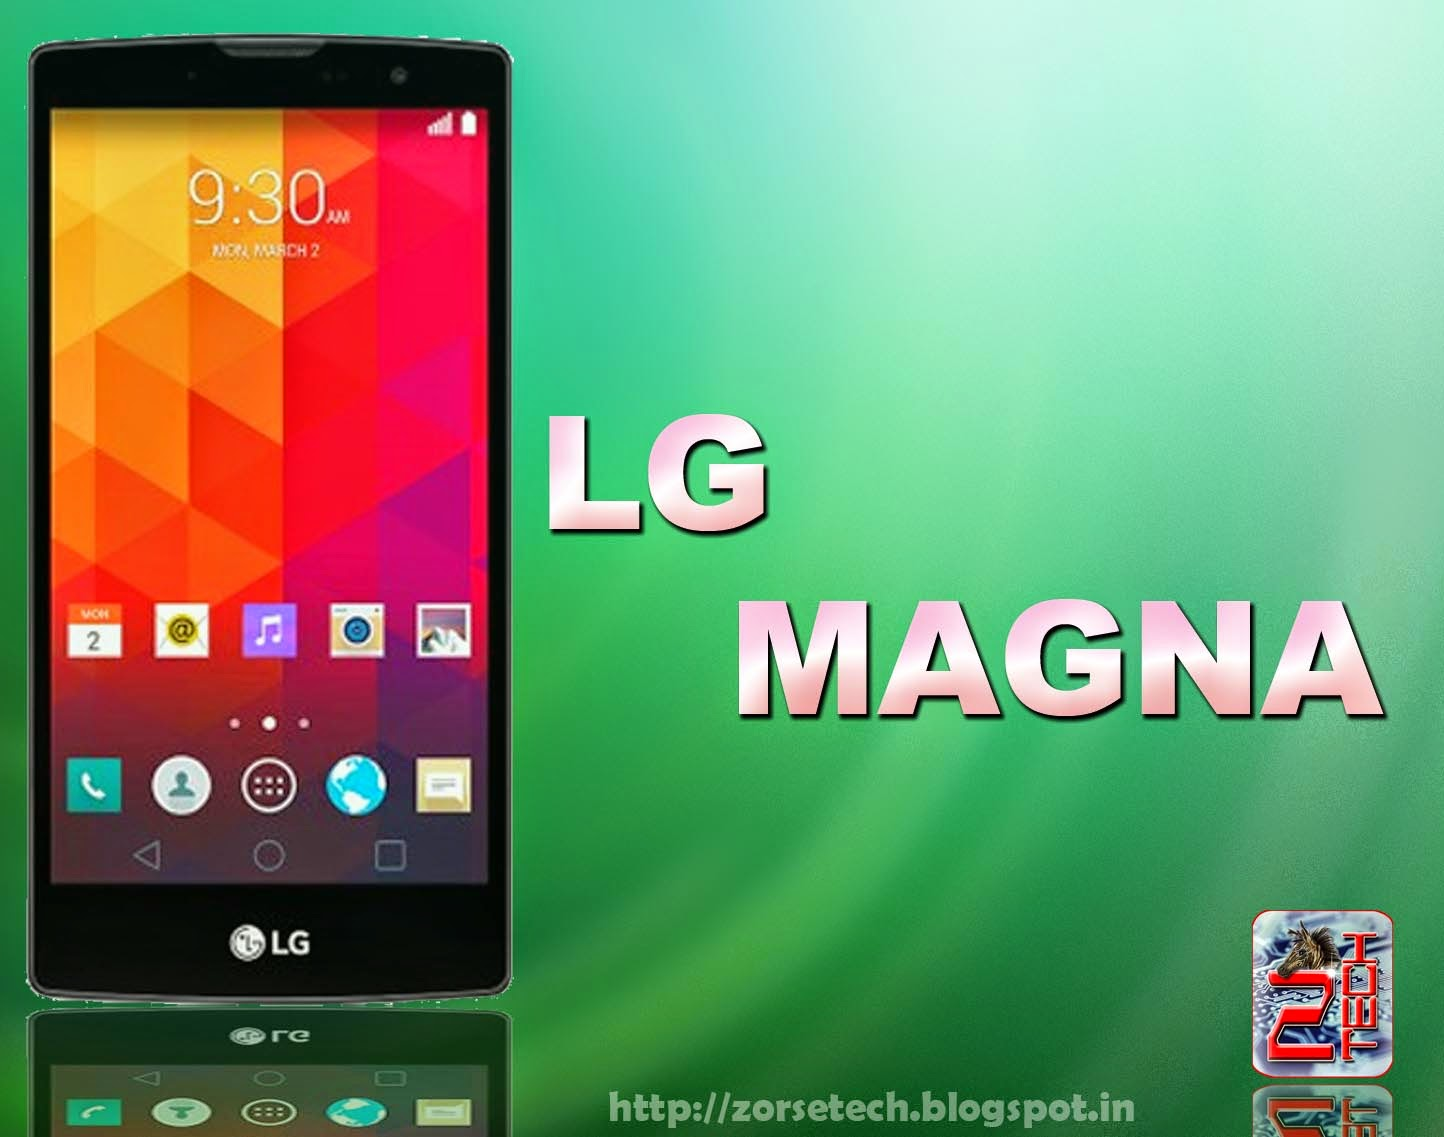 LG announced their new smartphone LG Magna with 5 inch huge display, 1 GB RAM, 8 MB Camera etc.. visit site..